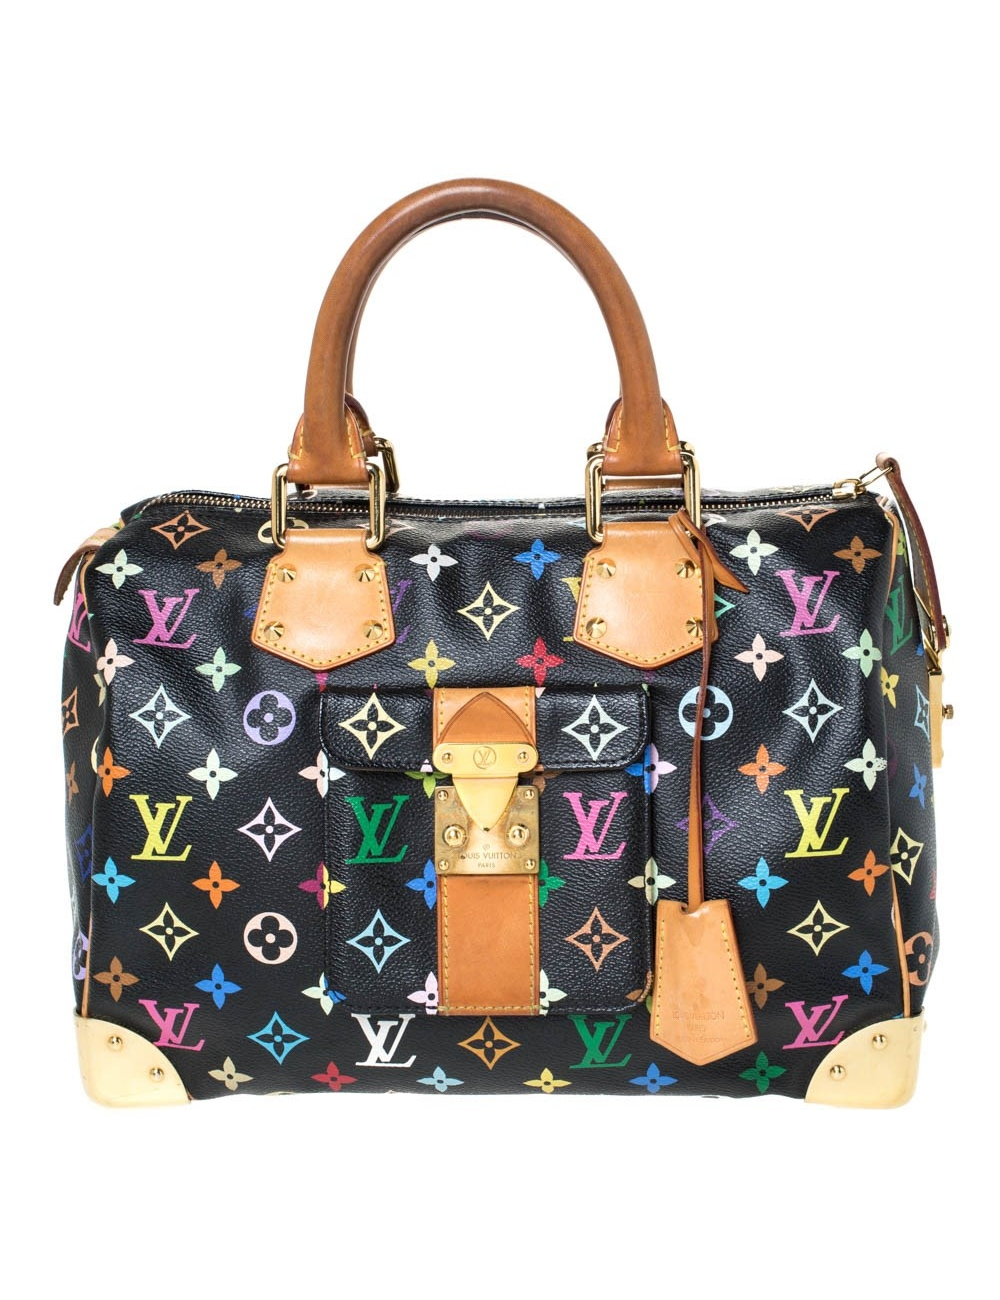 Titled as one of the greatest handbags in the history of luxury fashion, the Speedy from Louis Vuitt